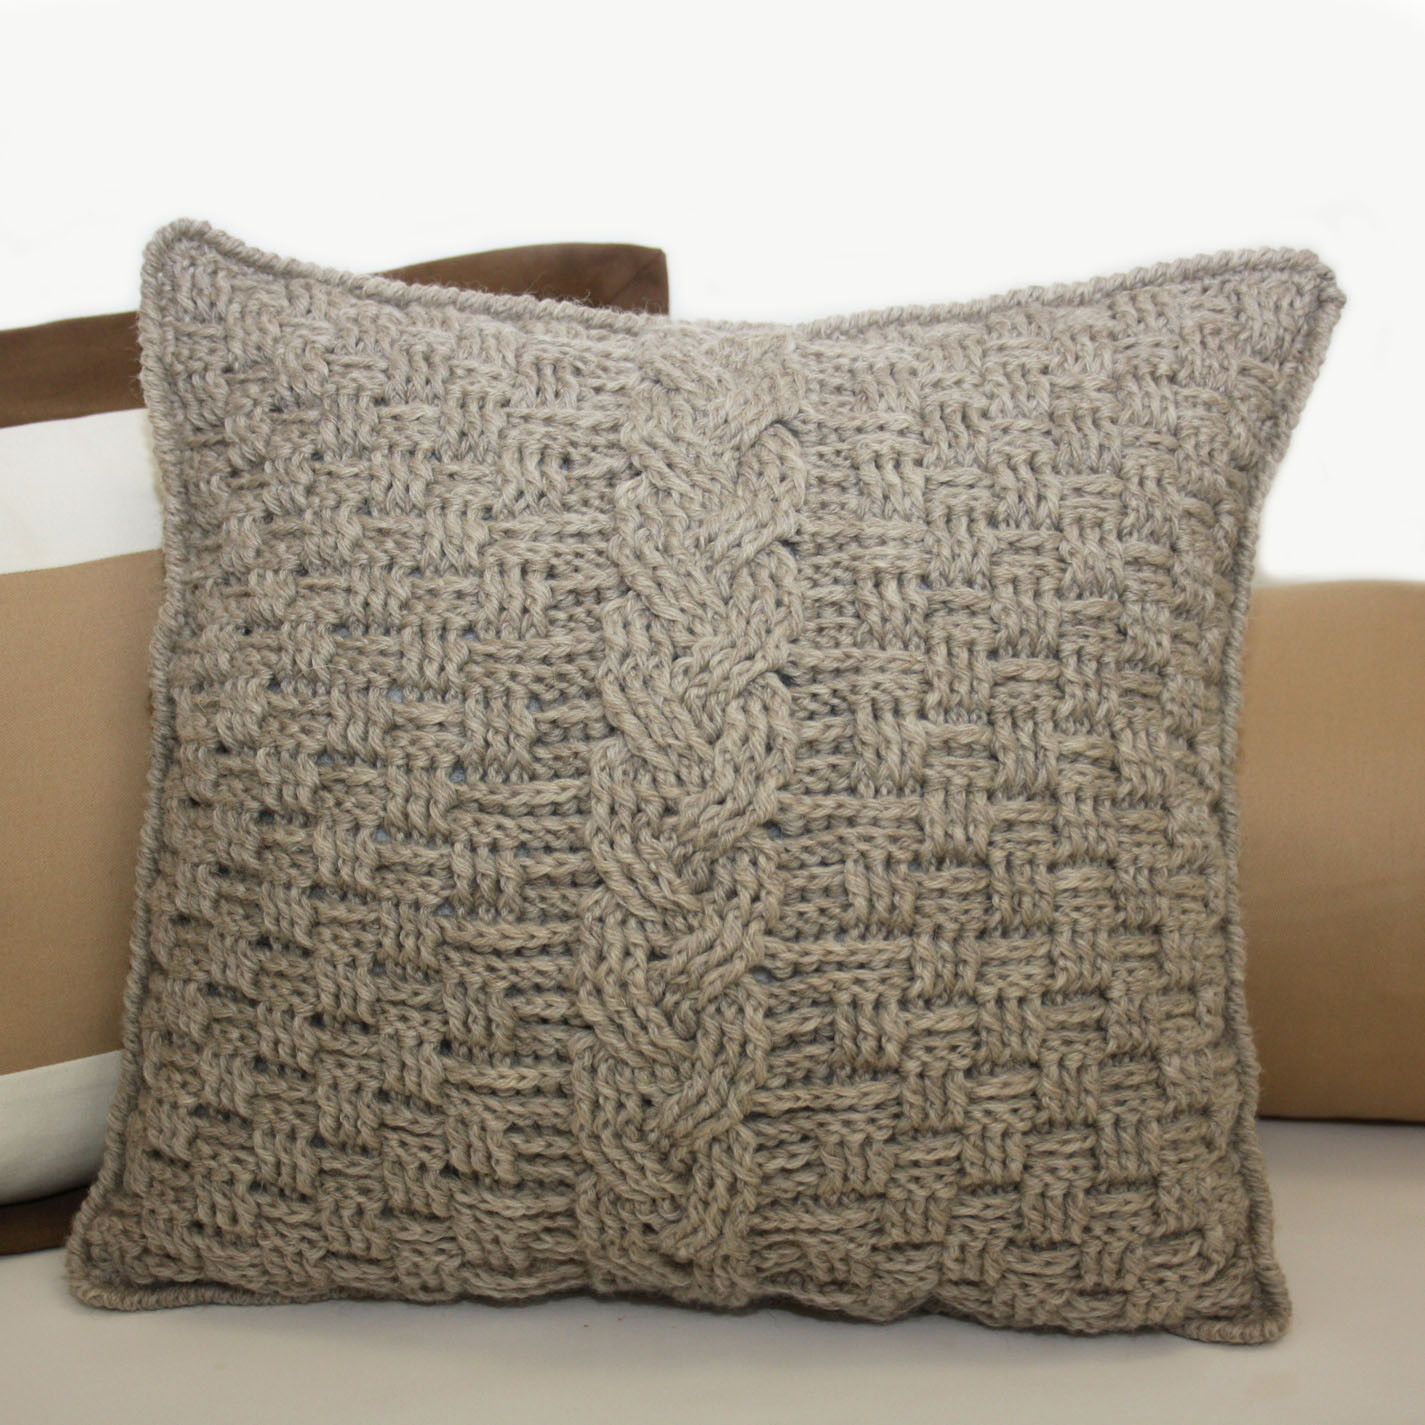 Crochet Pillow Fresh Knot•sew•cute Design Shop New Crochet Pattern Aran Of Superb 50 Images Crochet Pillow